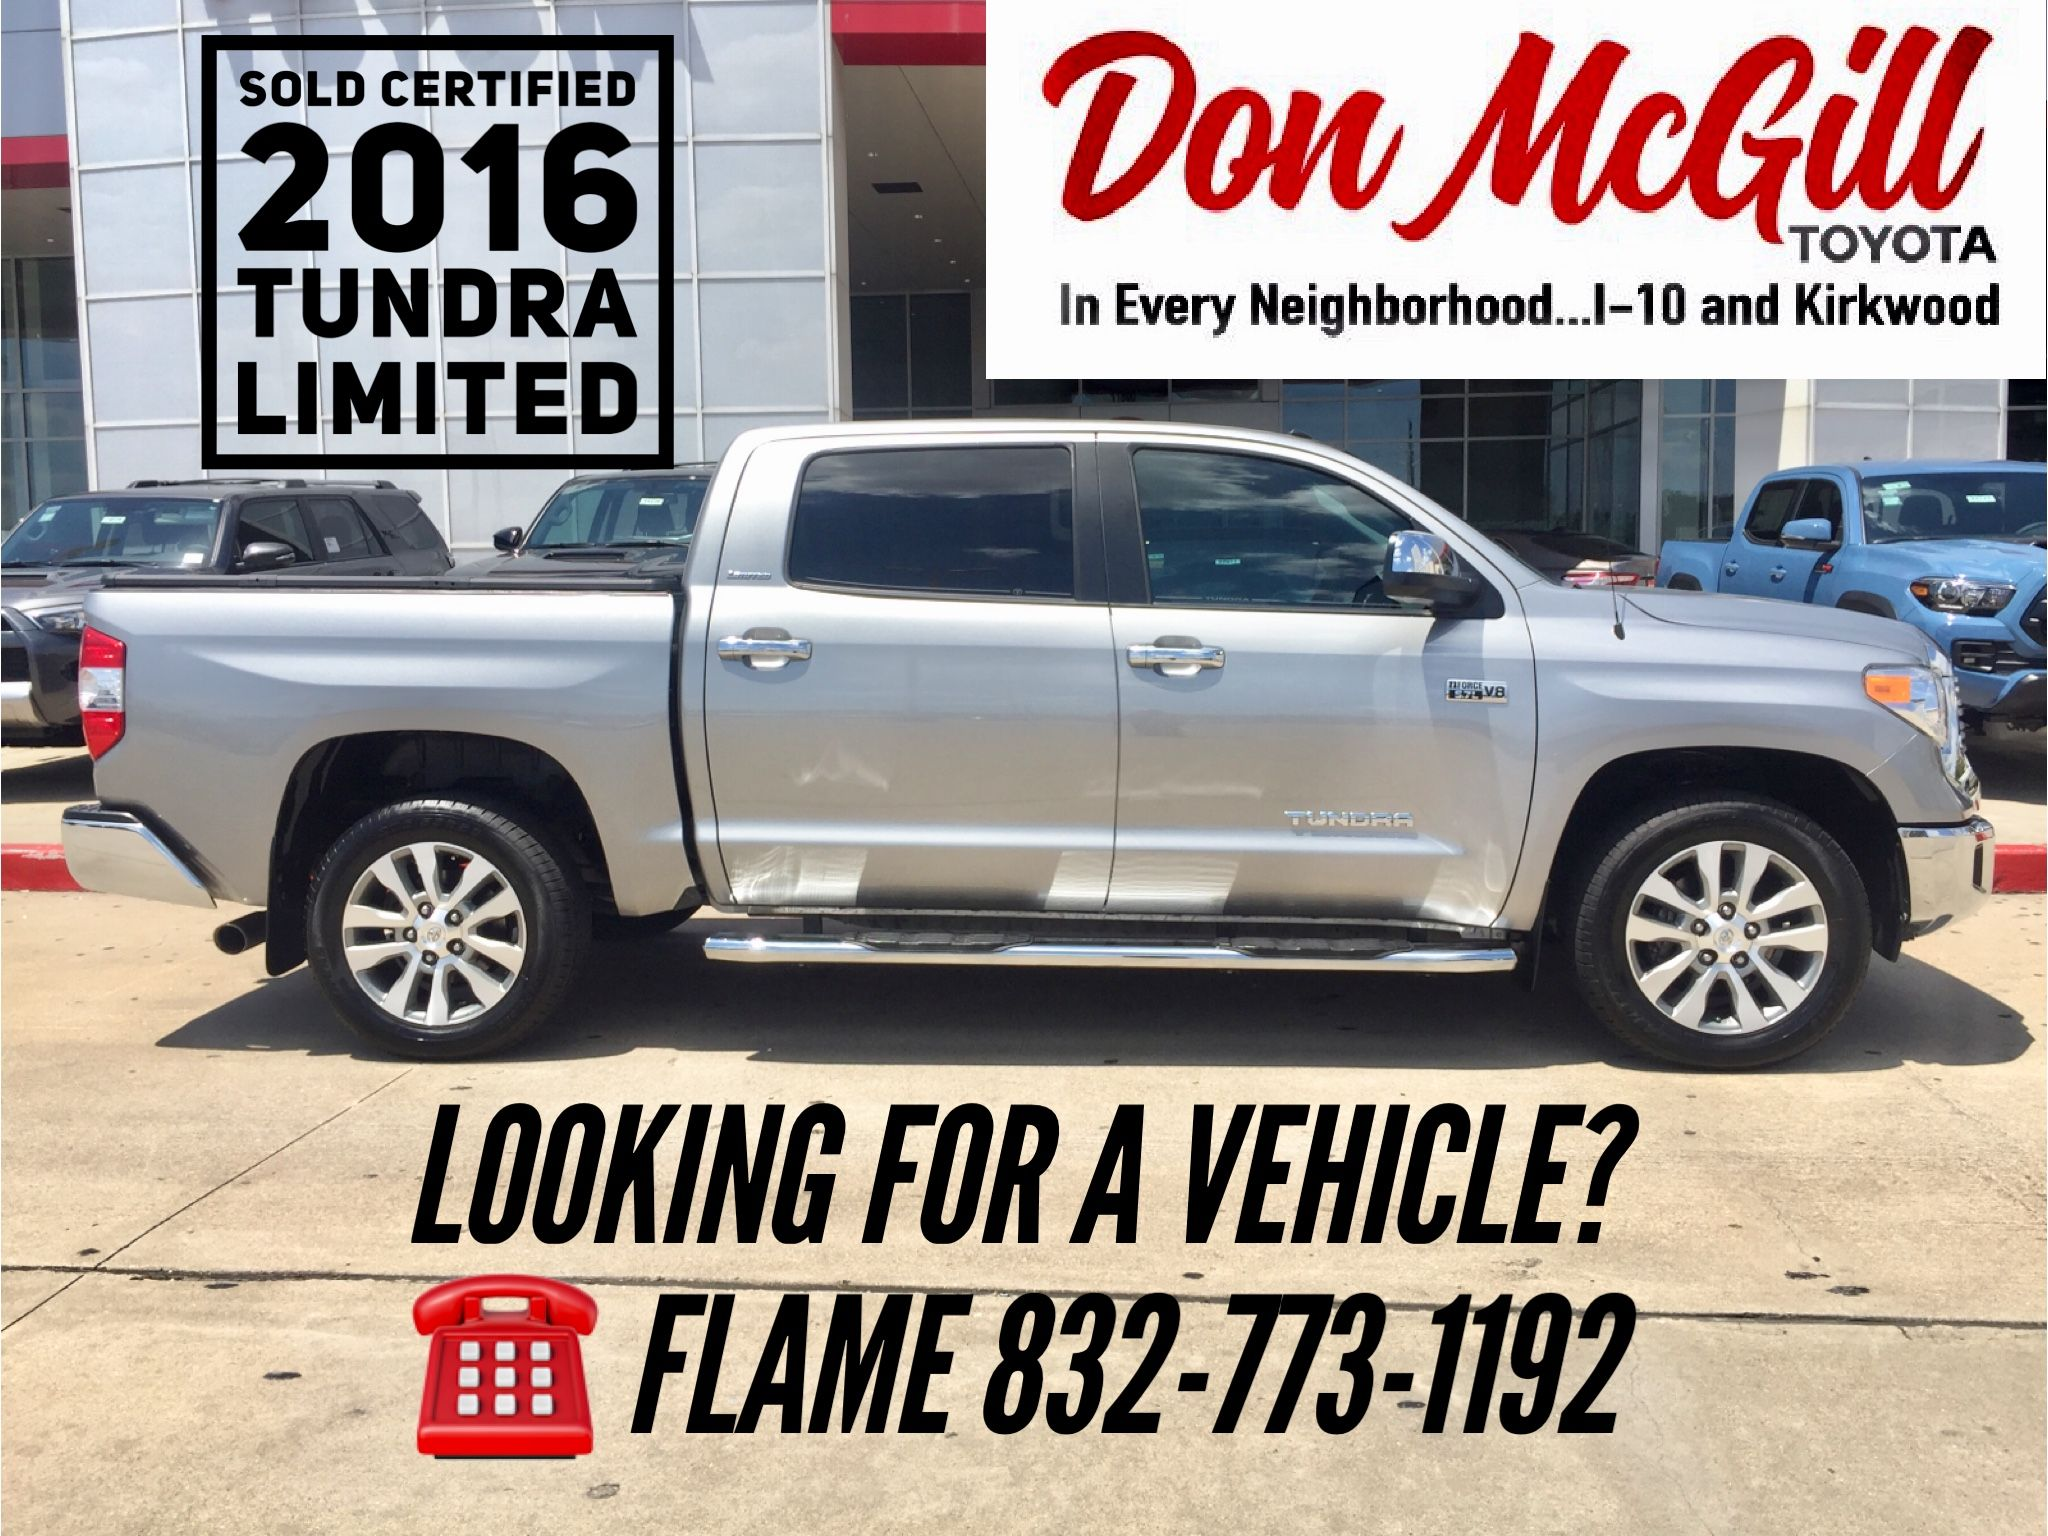 Don McGill Toyota 11800 Katy Freeway Houston, TX 77079 Call Or Text Flame @  832